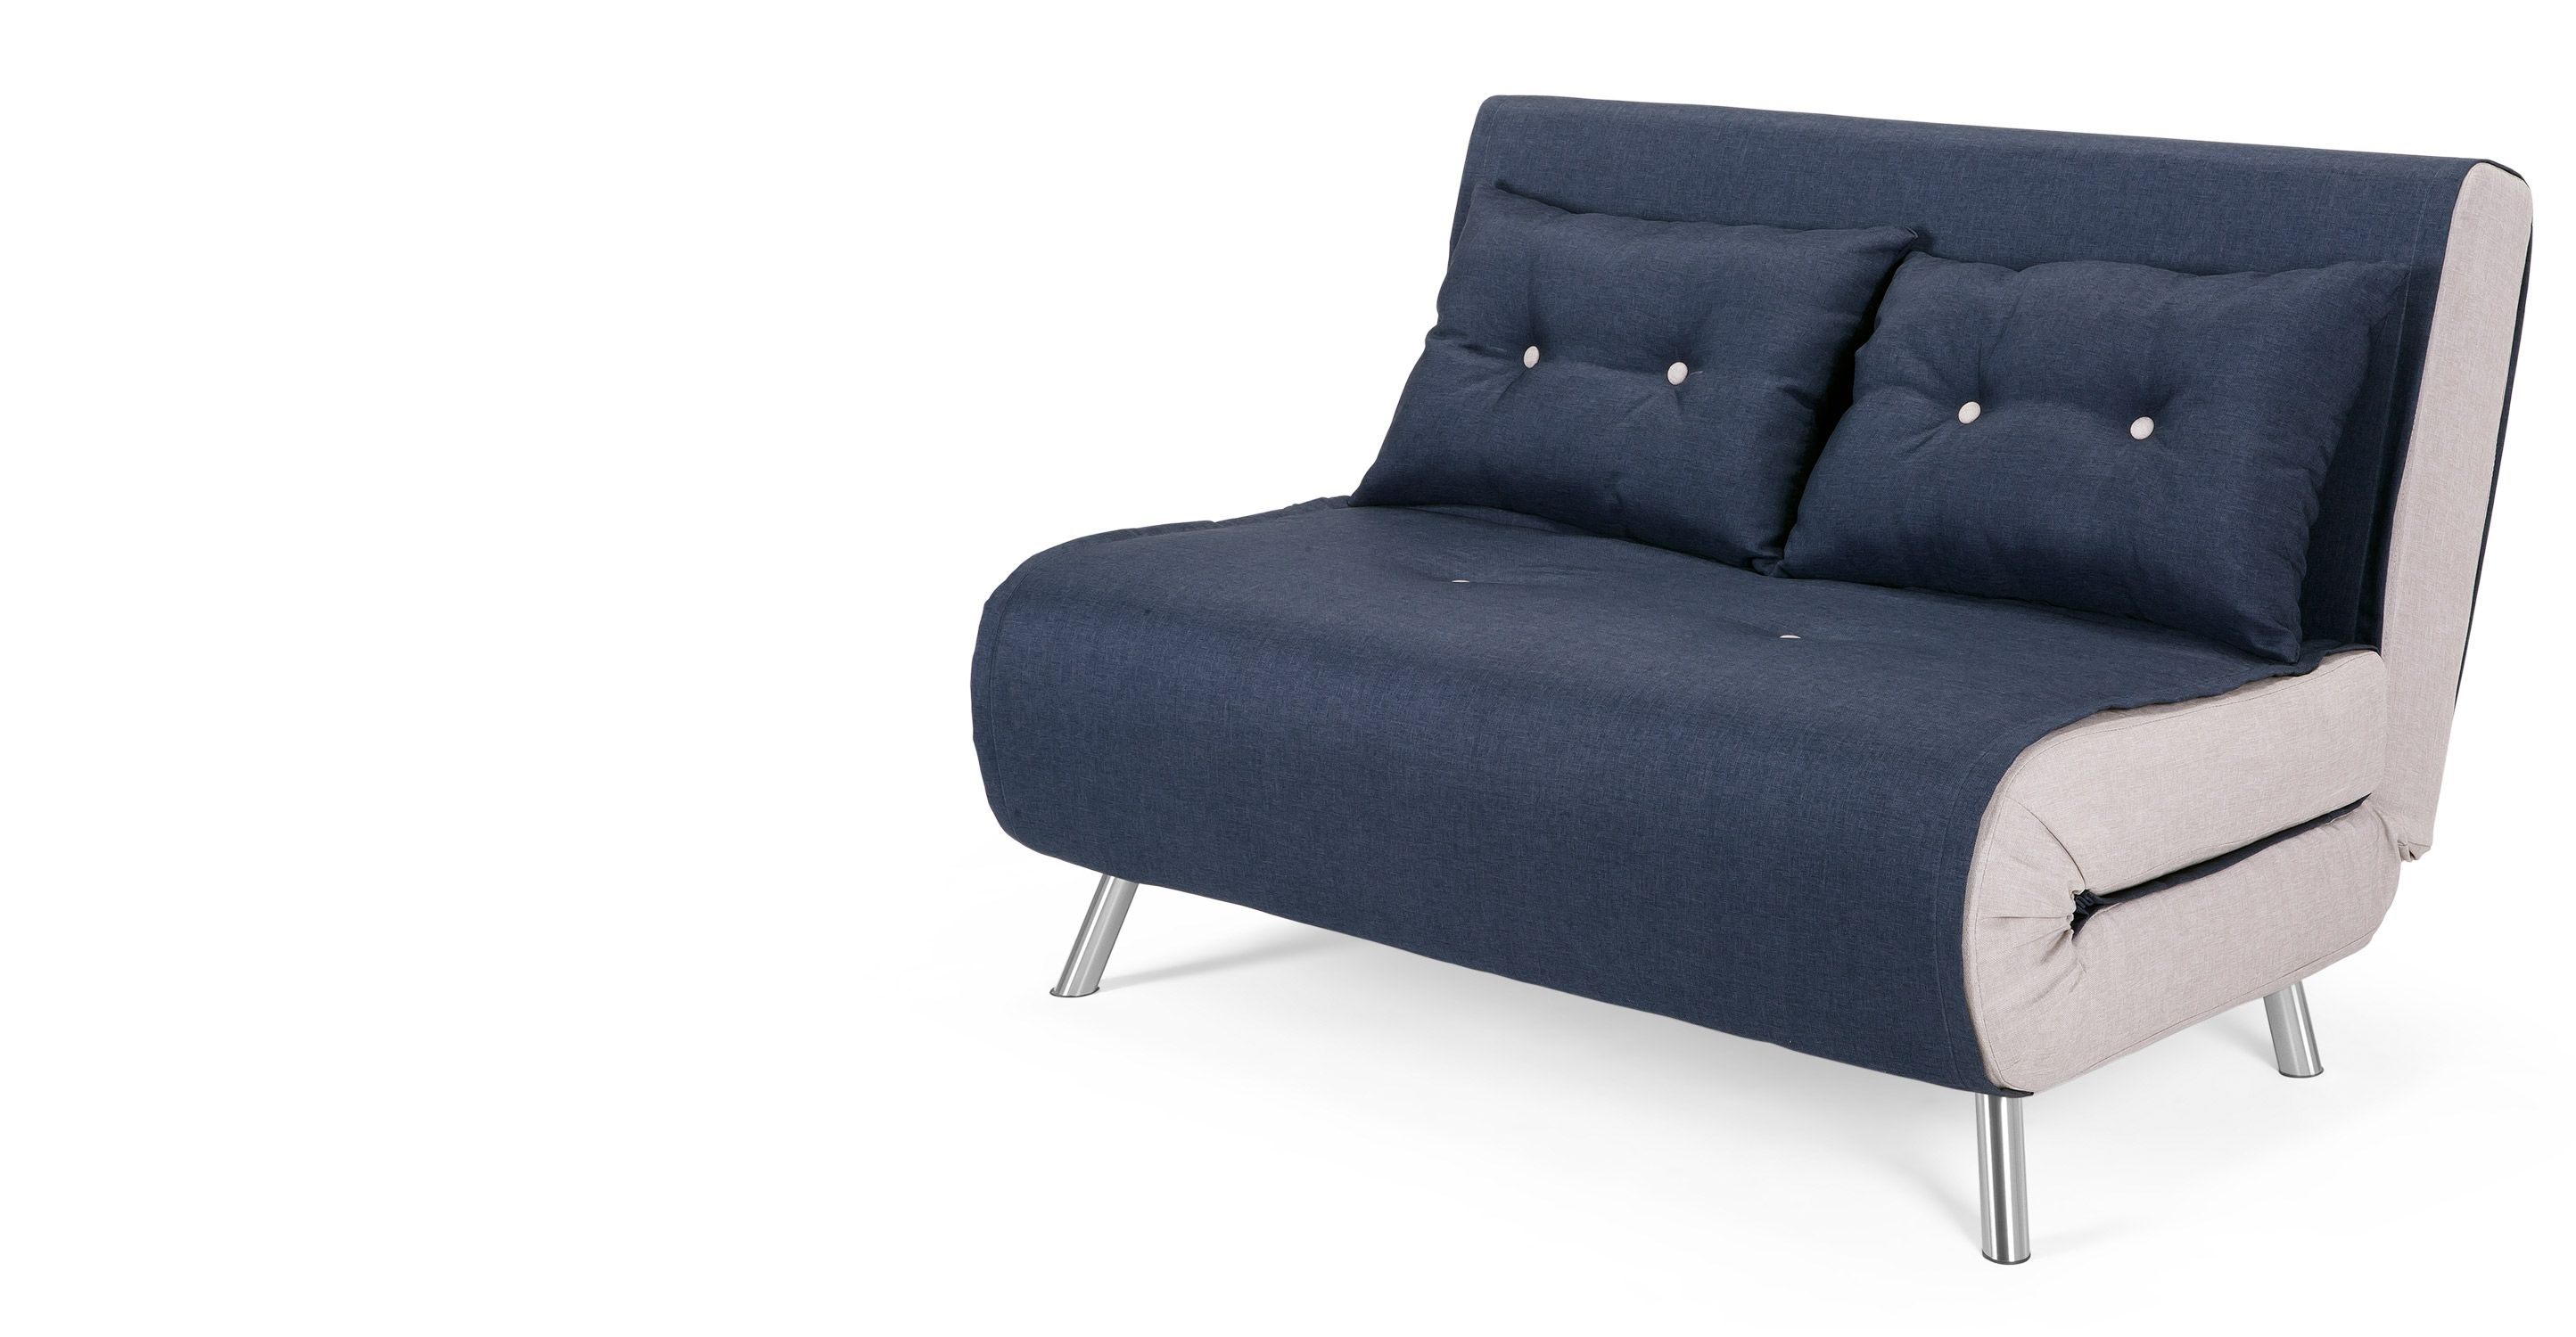 MADE Quartz Blue Sofa bed | Room | Small sofa, Sofa bed ...